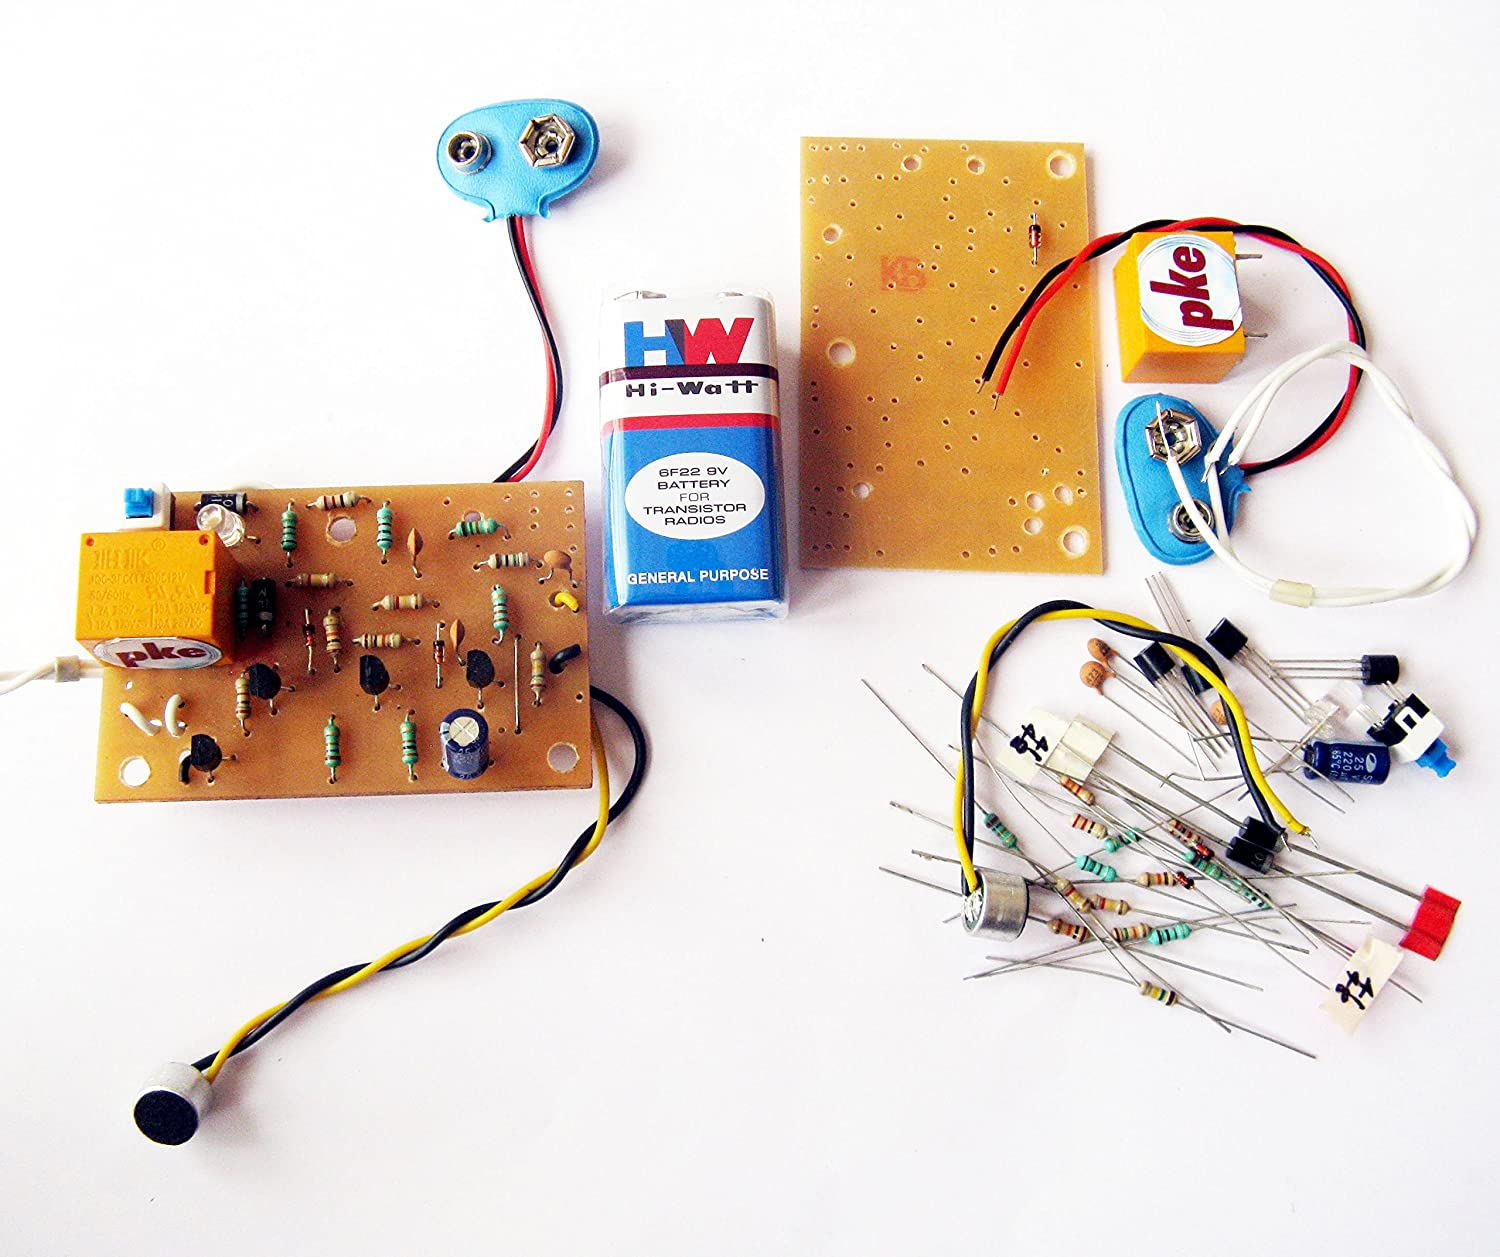 Pke Clap Switch Sound Control Circuit With Complete Assembling Kit Using Transistor Project